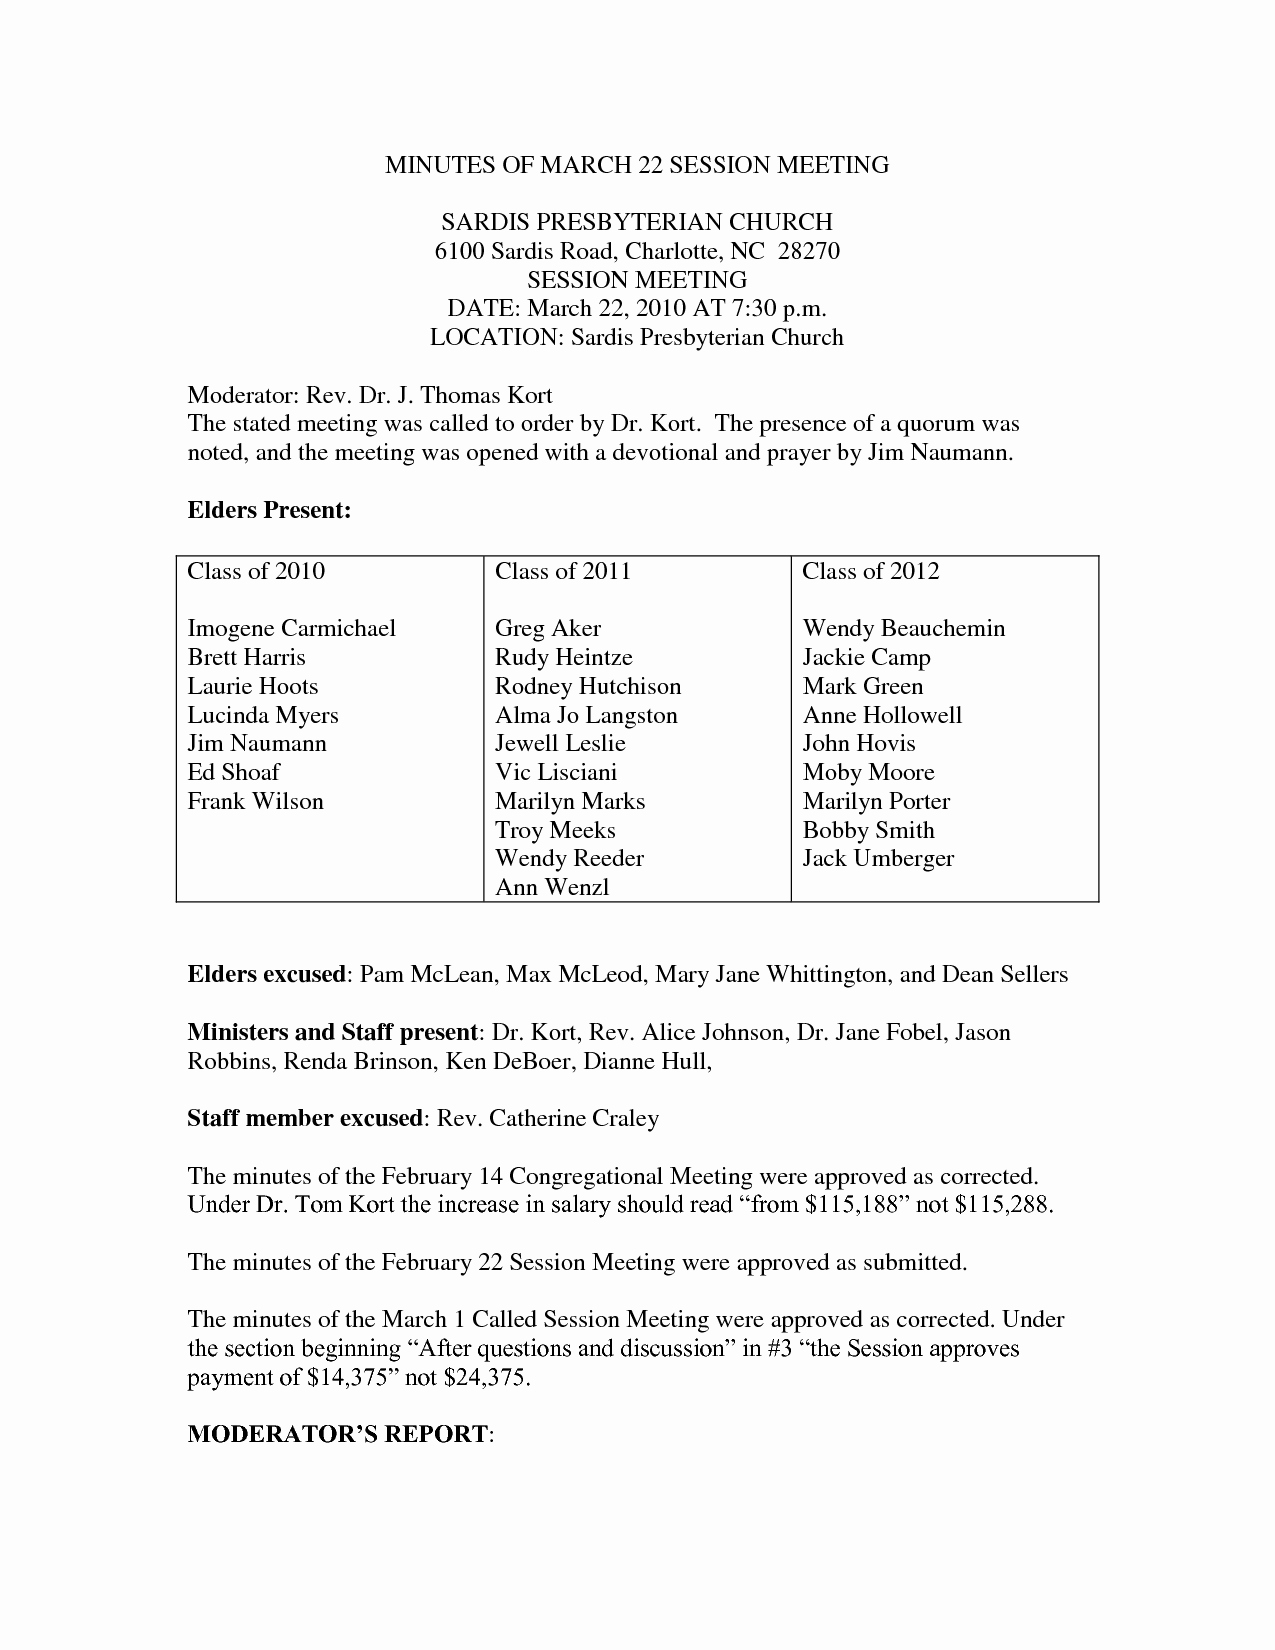 Sample Minutes Of Meeting Template Awesome 10 Best Of Church Business Meeting Minutes Sample